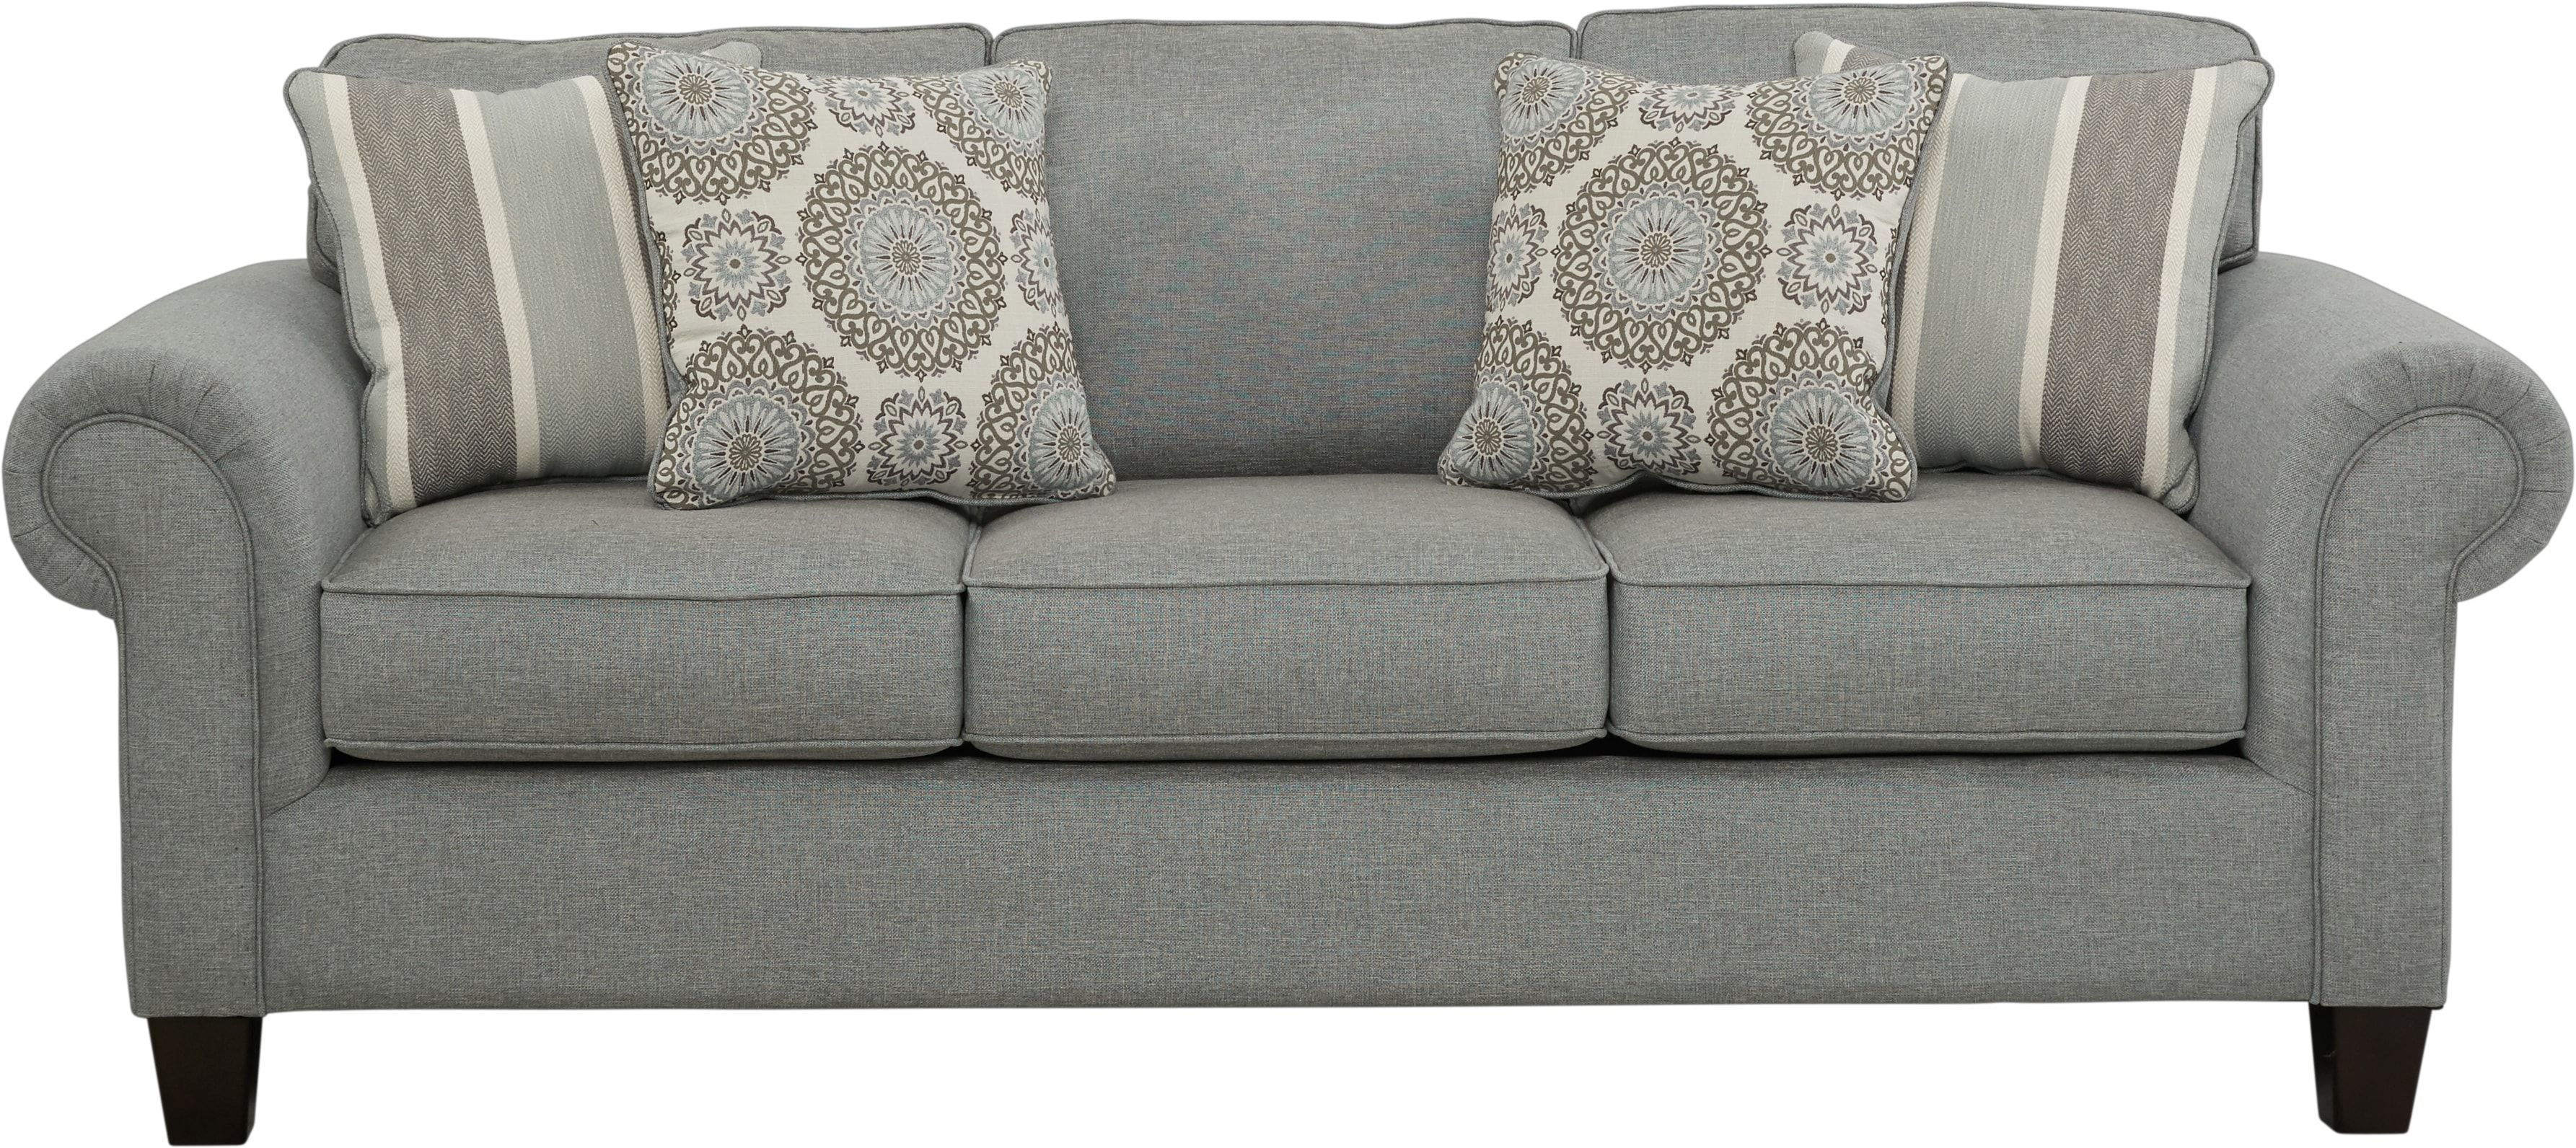 Pennington Blue Sofa White Couch Living Room Brown Couch Living